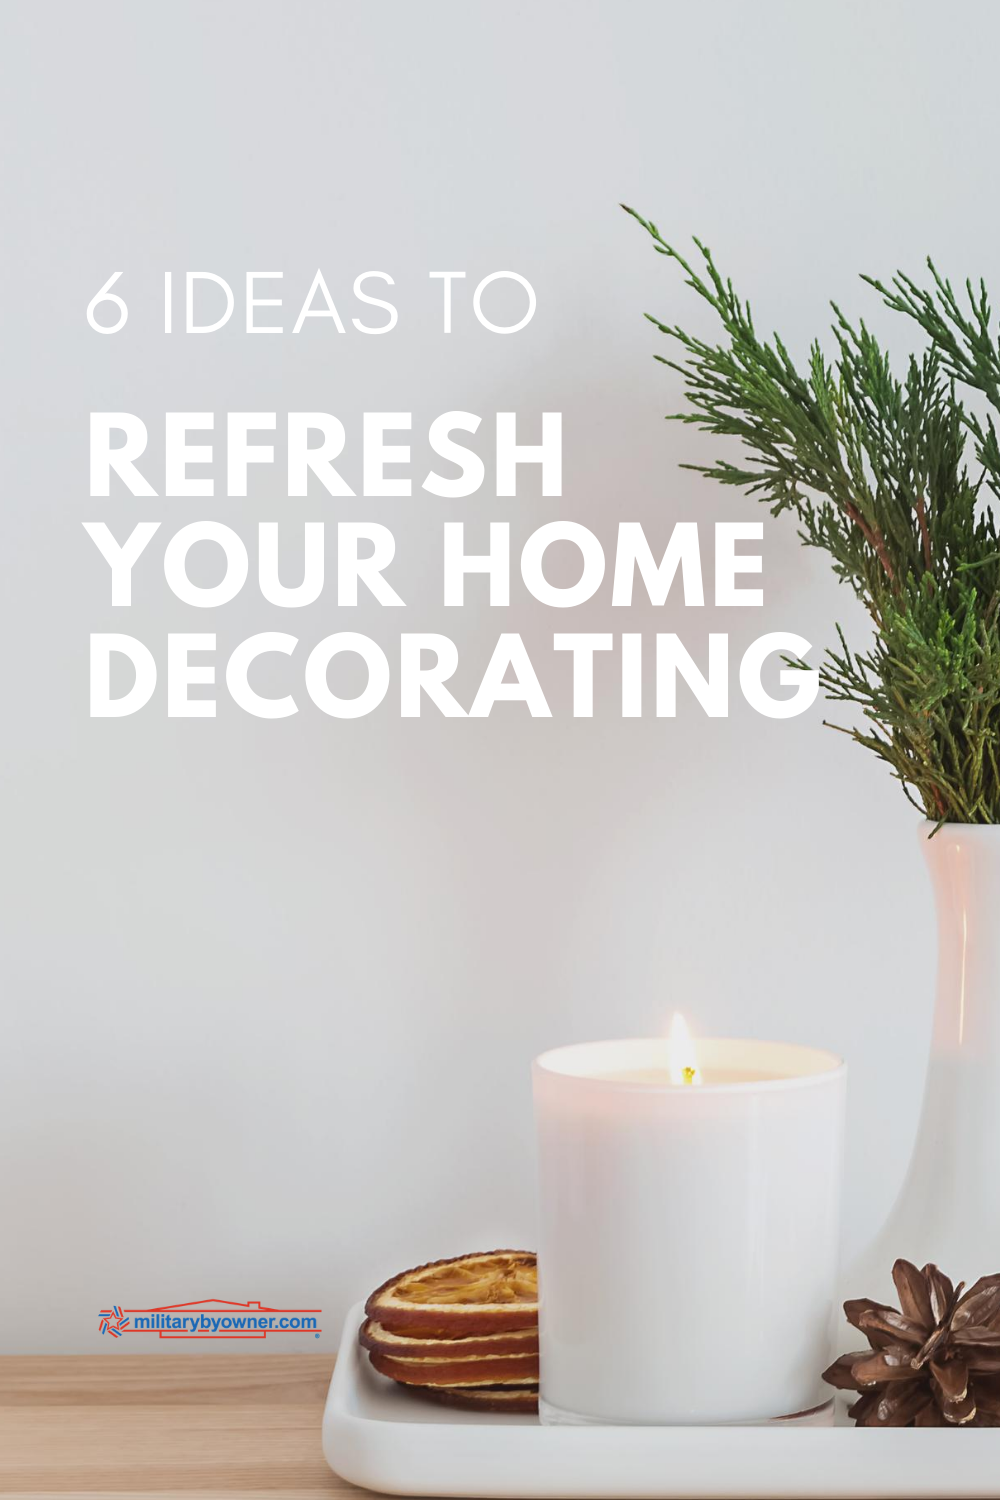 6 Ideas to Refresh Your Home Decorating